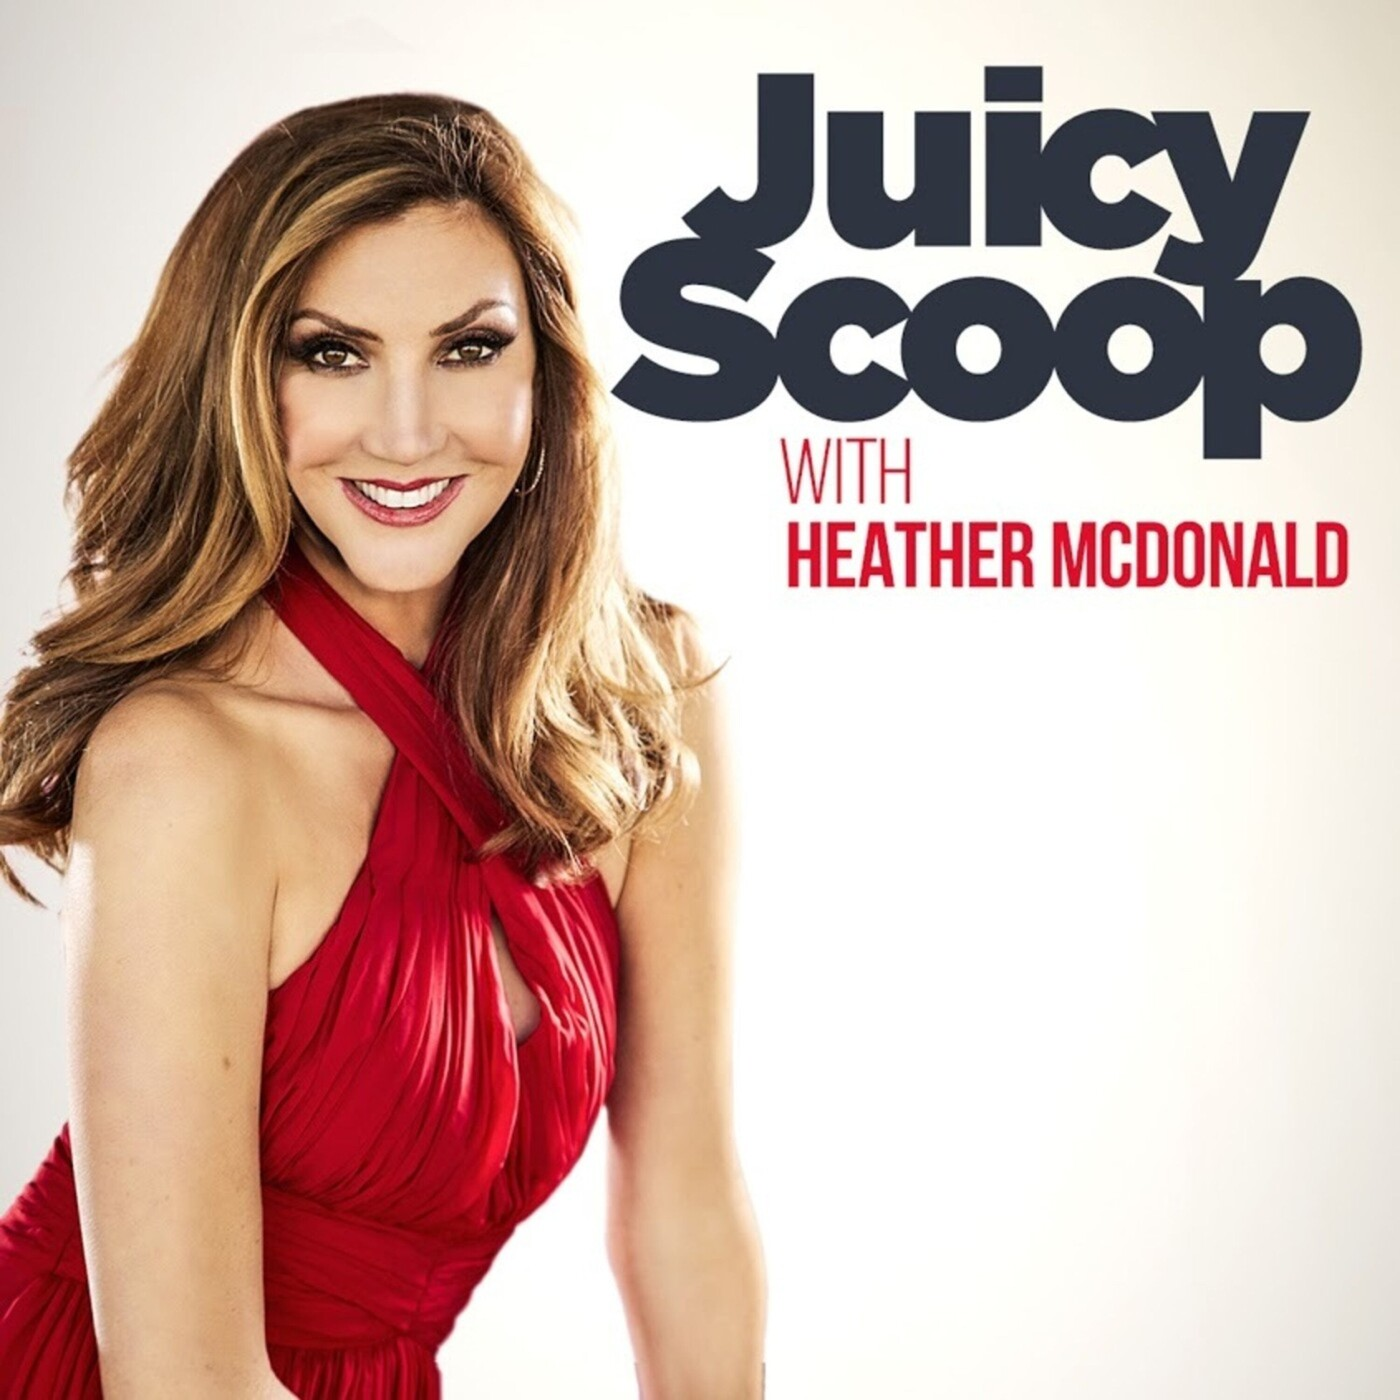 Juicy Scoop - Ep 224 - Channing Tatum and Jenna Dewan 'step-down' & guest Nick Viall.